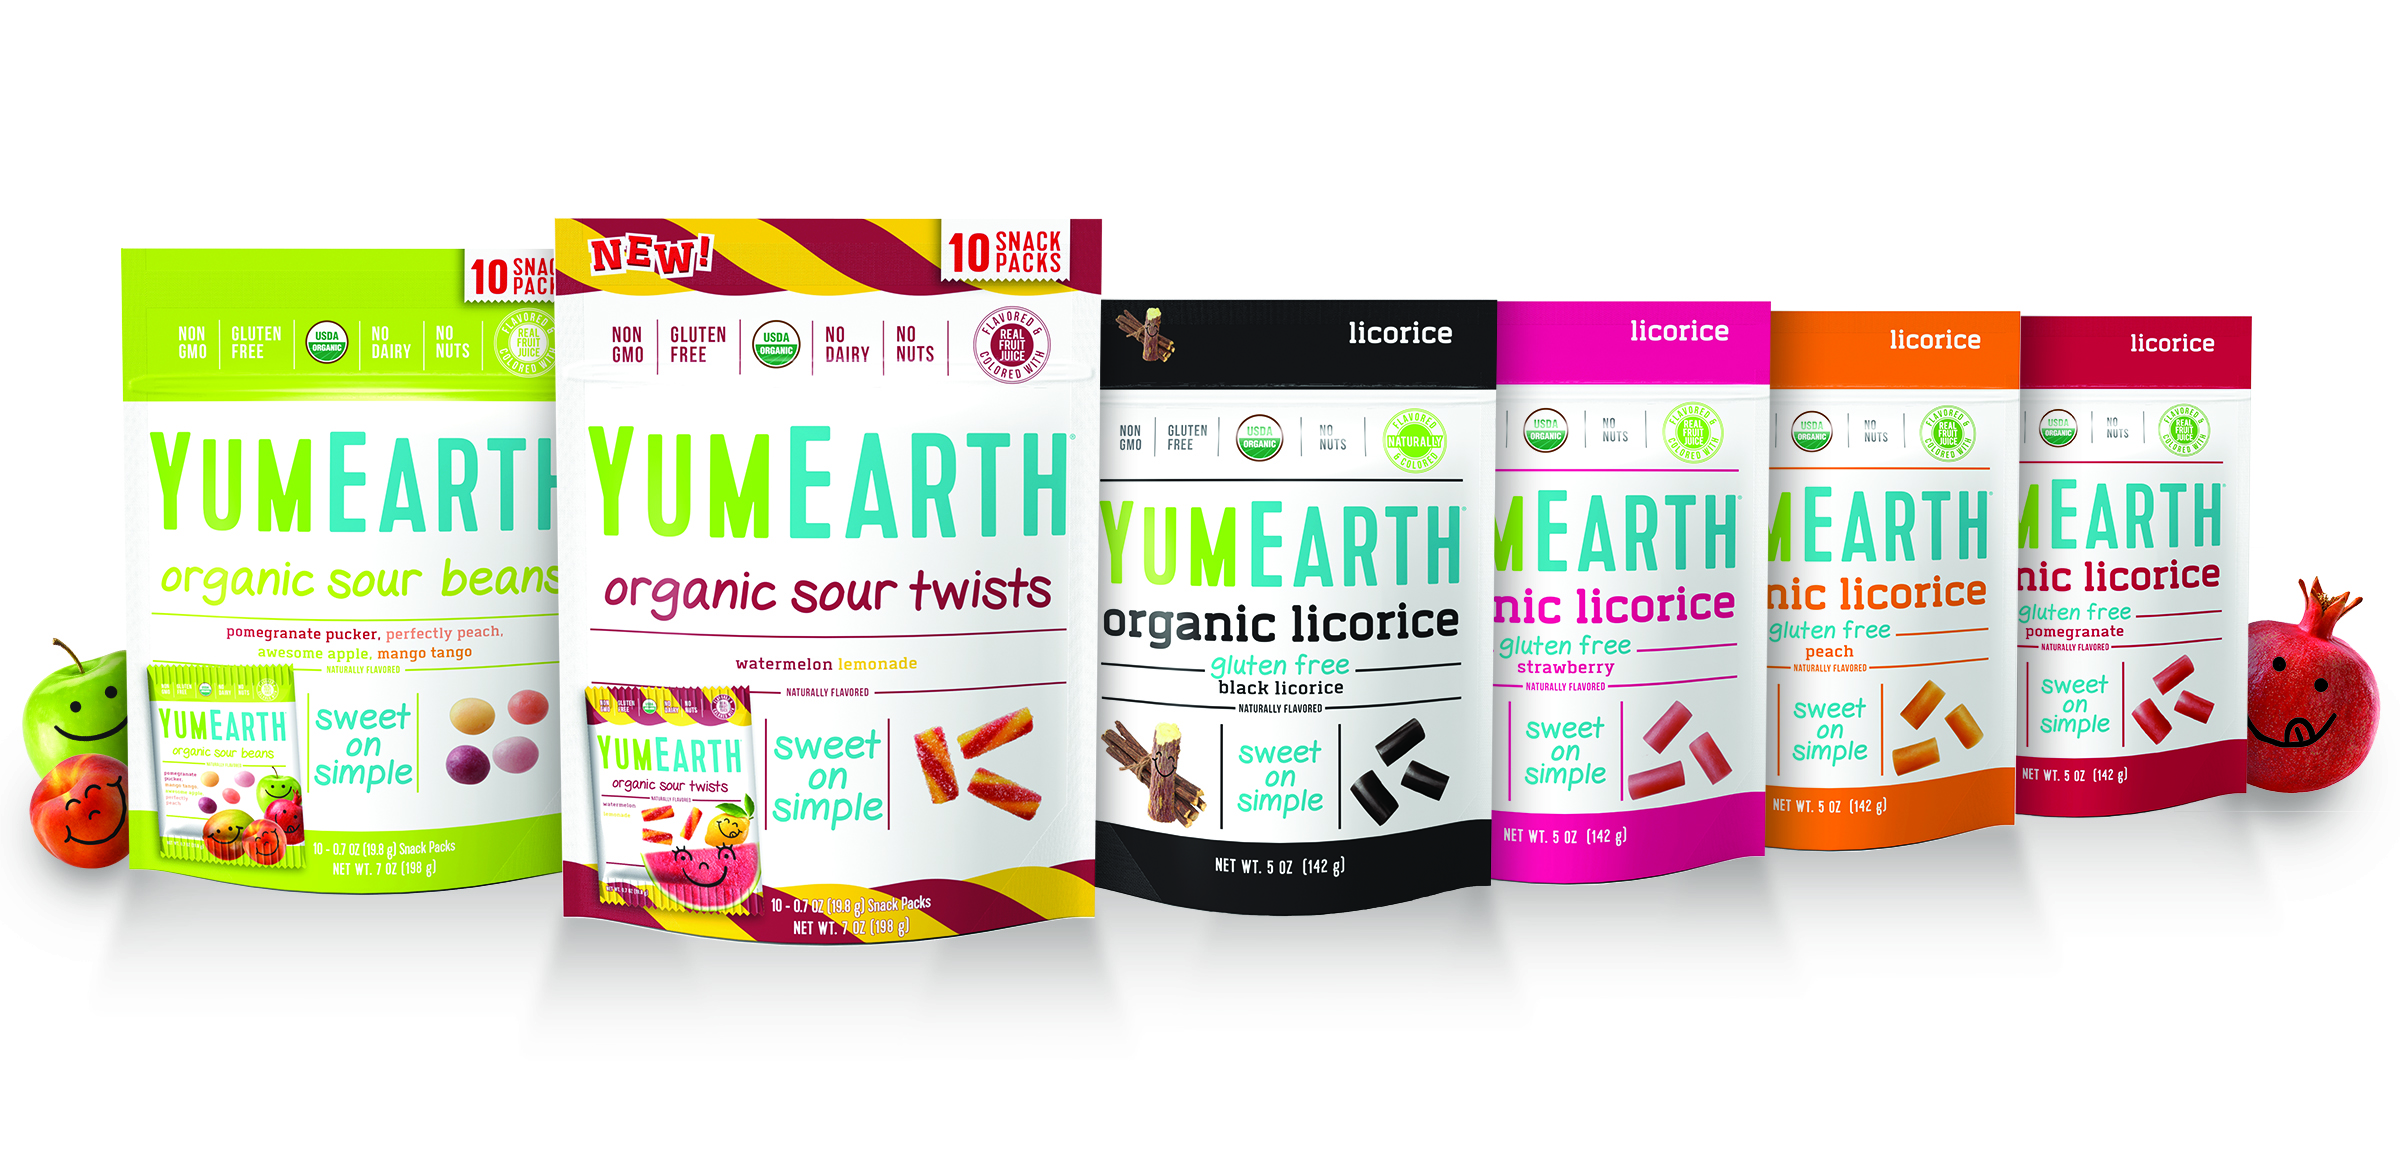 Six New Organic Candies from YumEarth